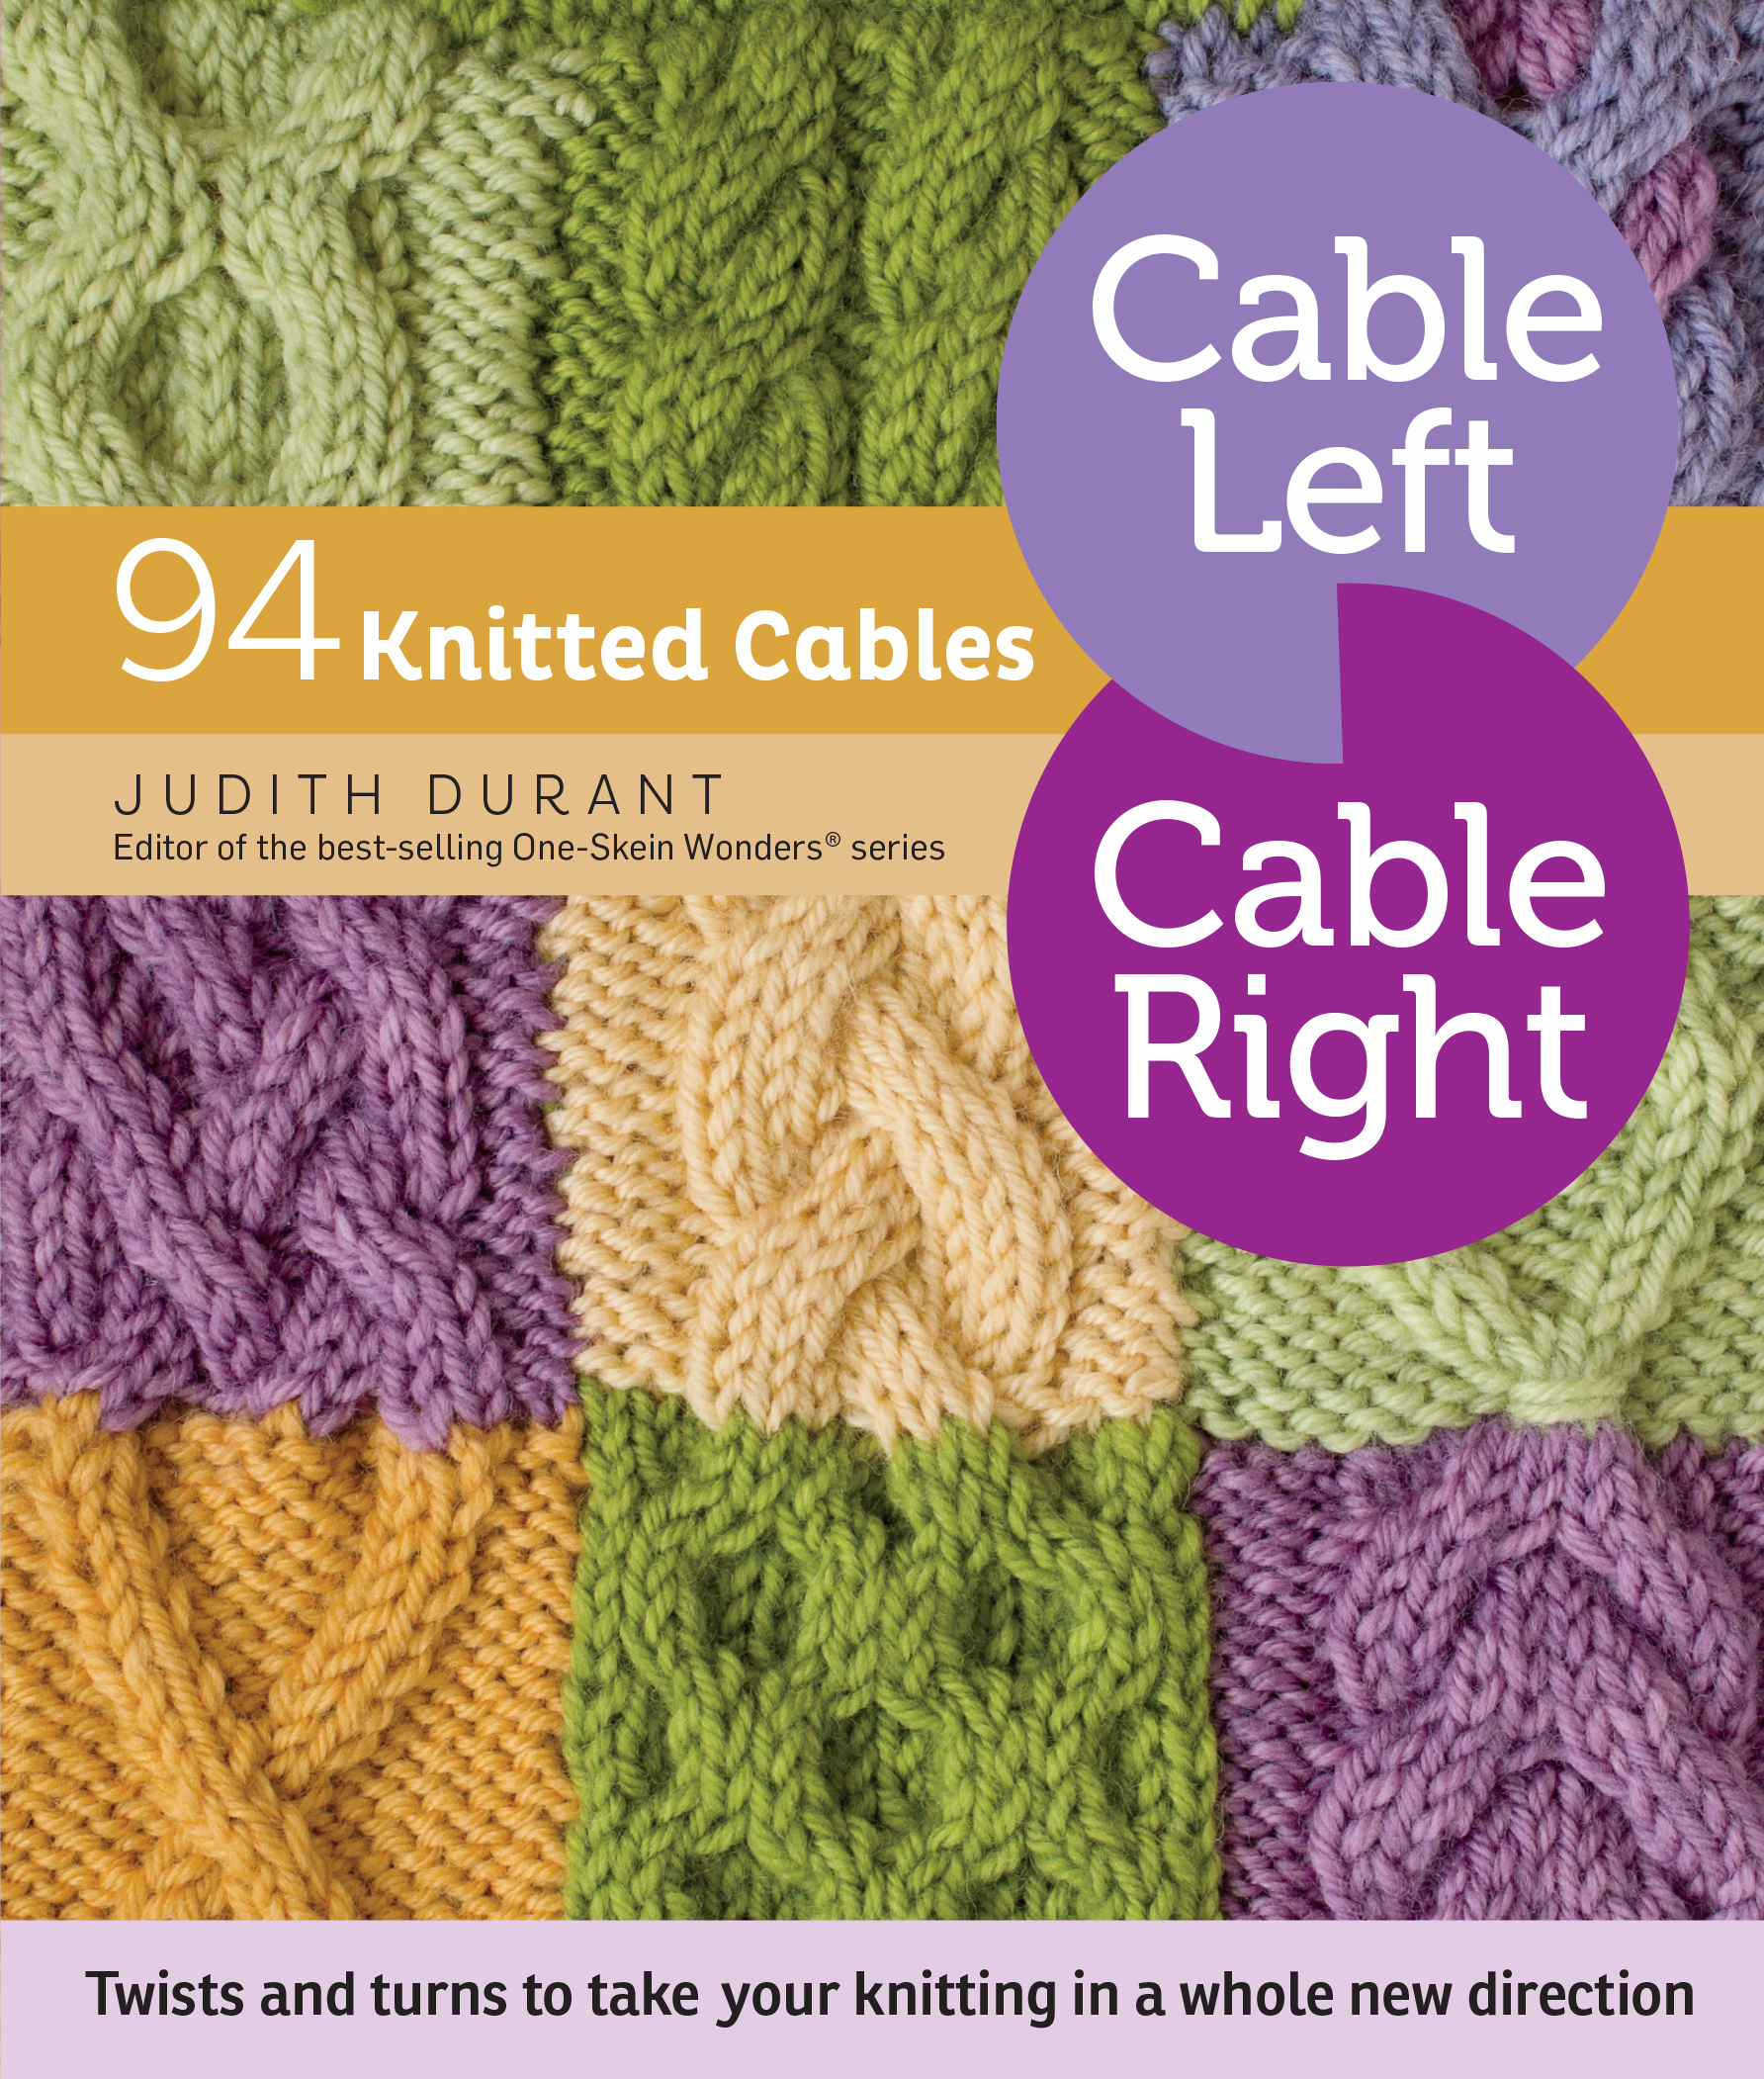 Cable Left, Cable Right 94 Knitted Cables - Judith Durant